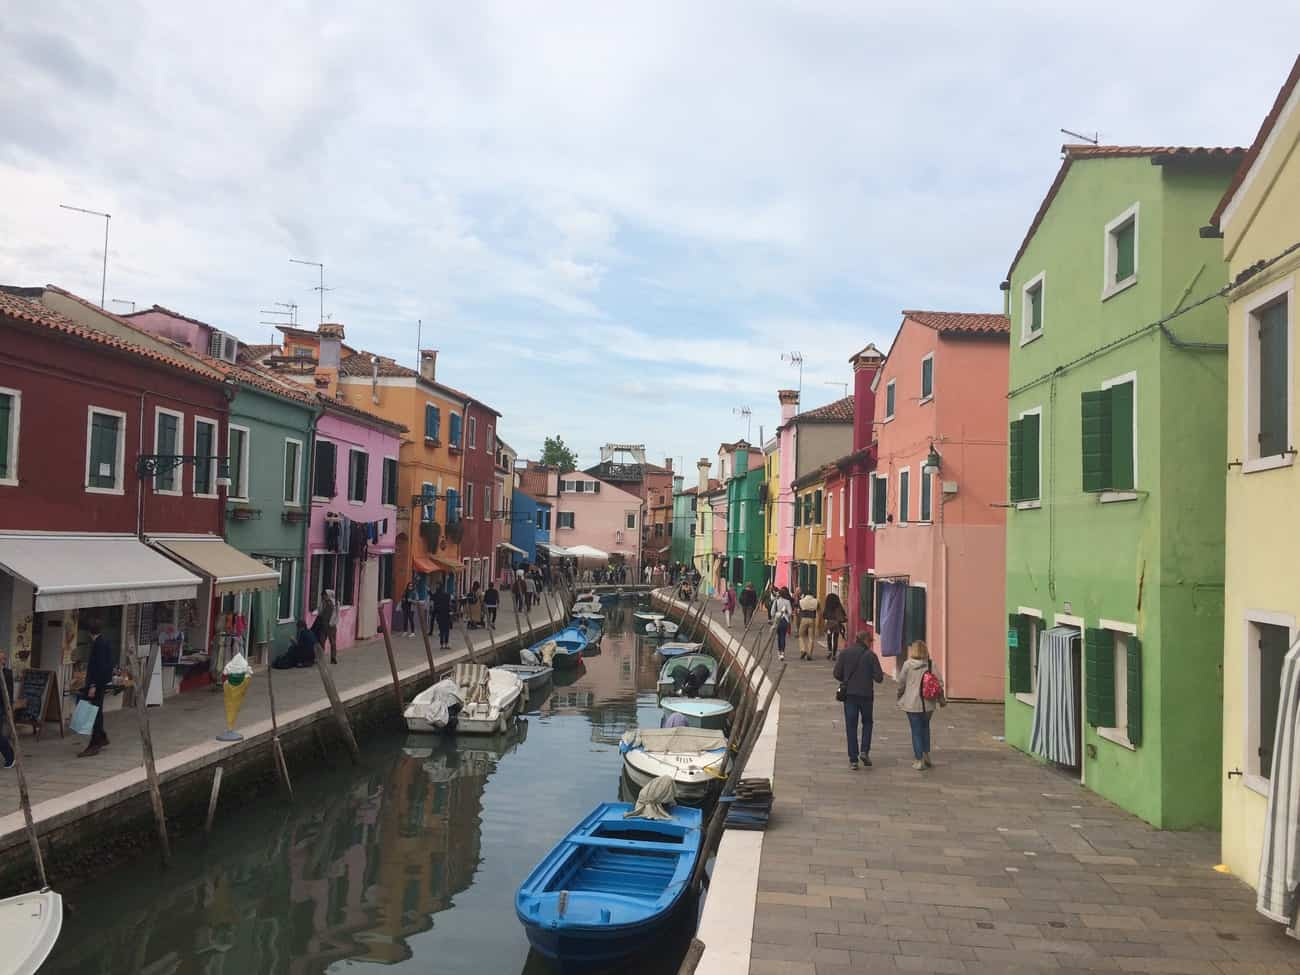 Burano colourful streets